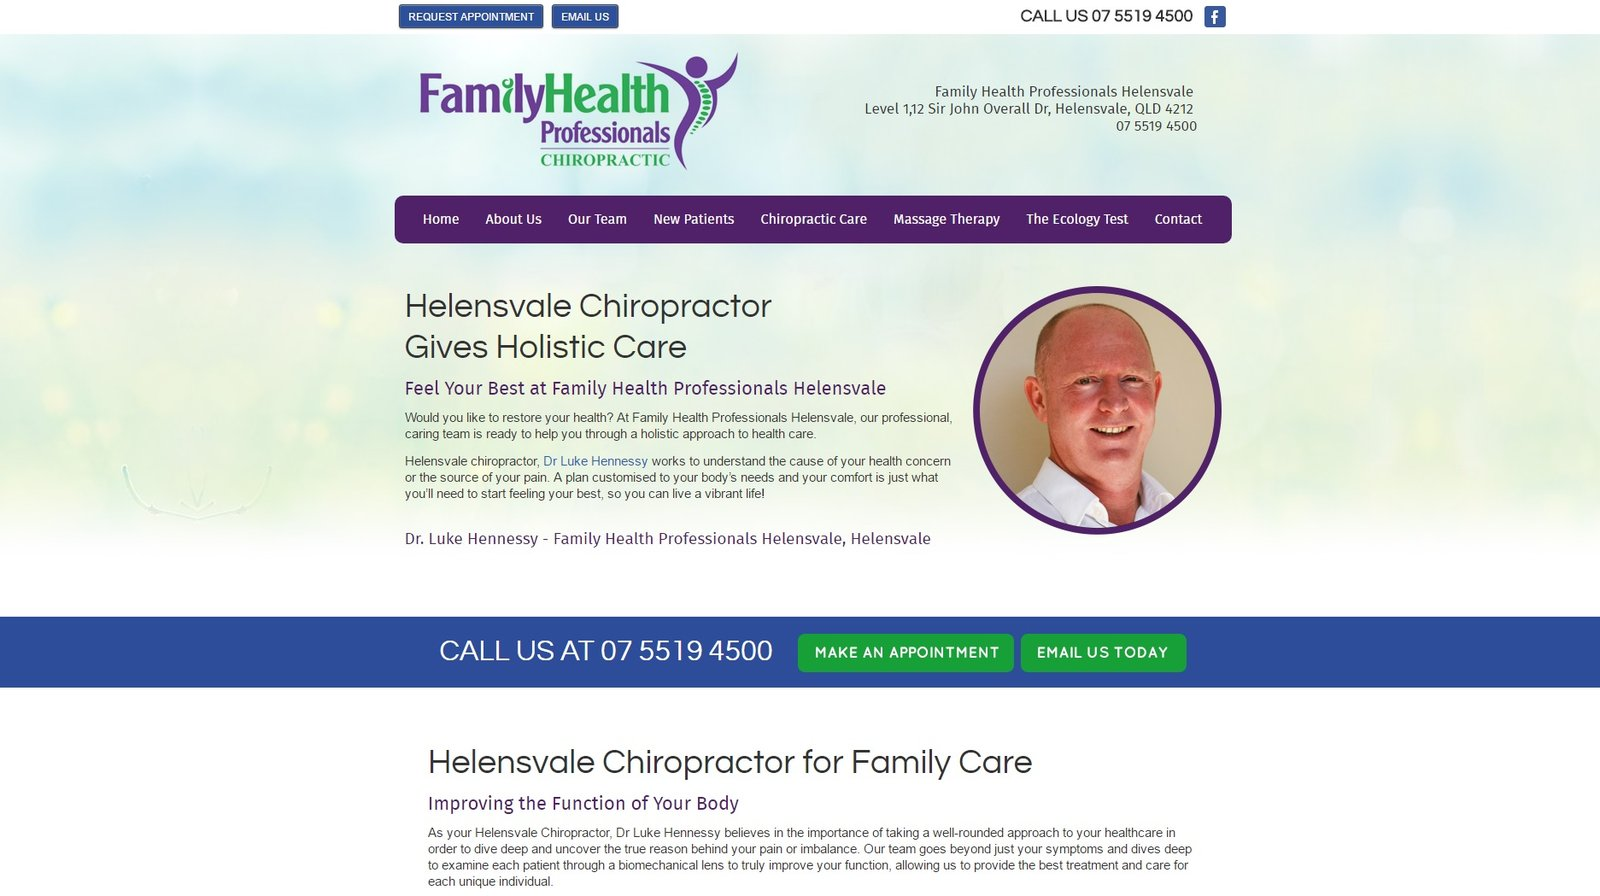 web design for Southport Chiropractic